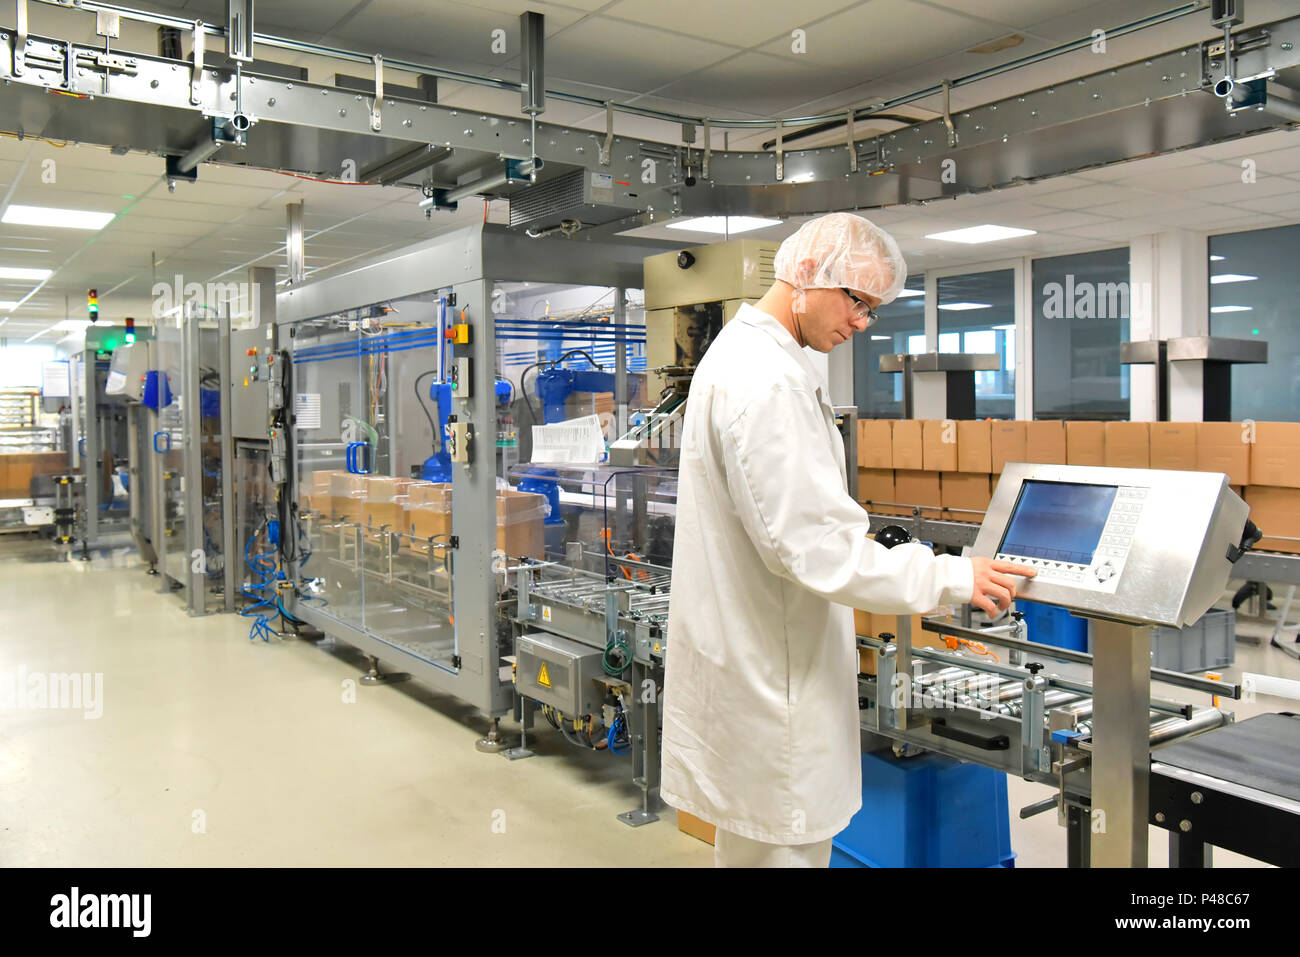 Conveyor belt worker operates a robot that transports insulin bags - modern factory for the production of medicines in the healthcare sector - Stock Image